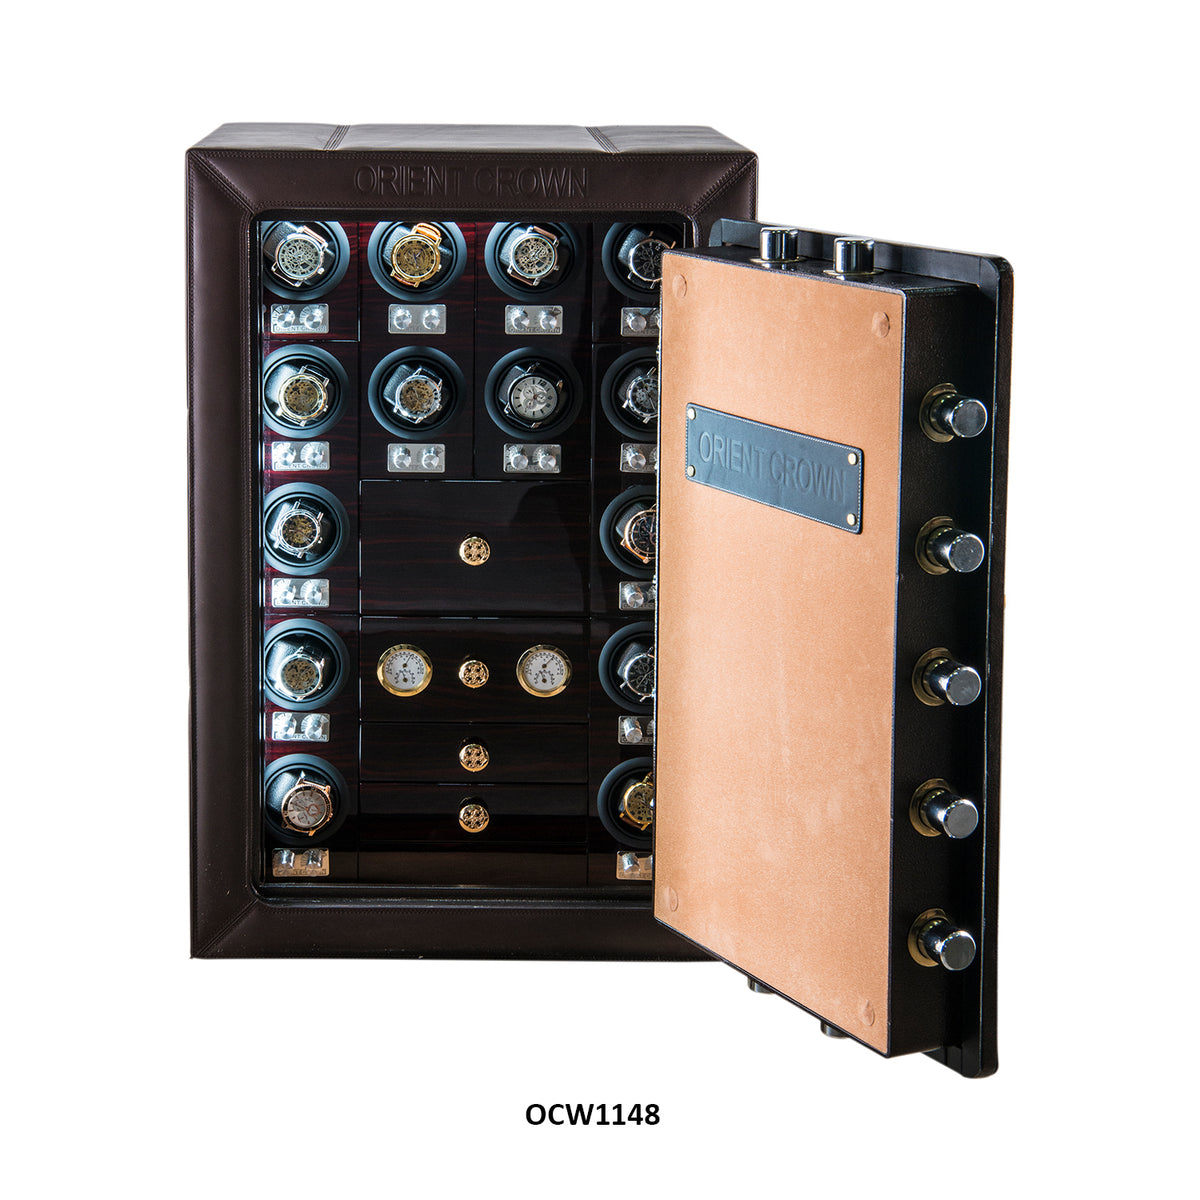 Watch Winder Model OCW1148